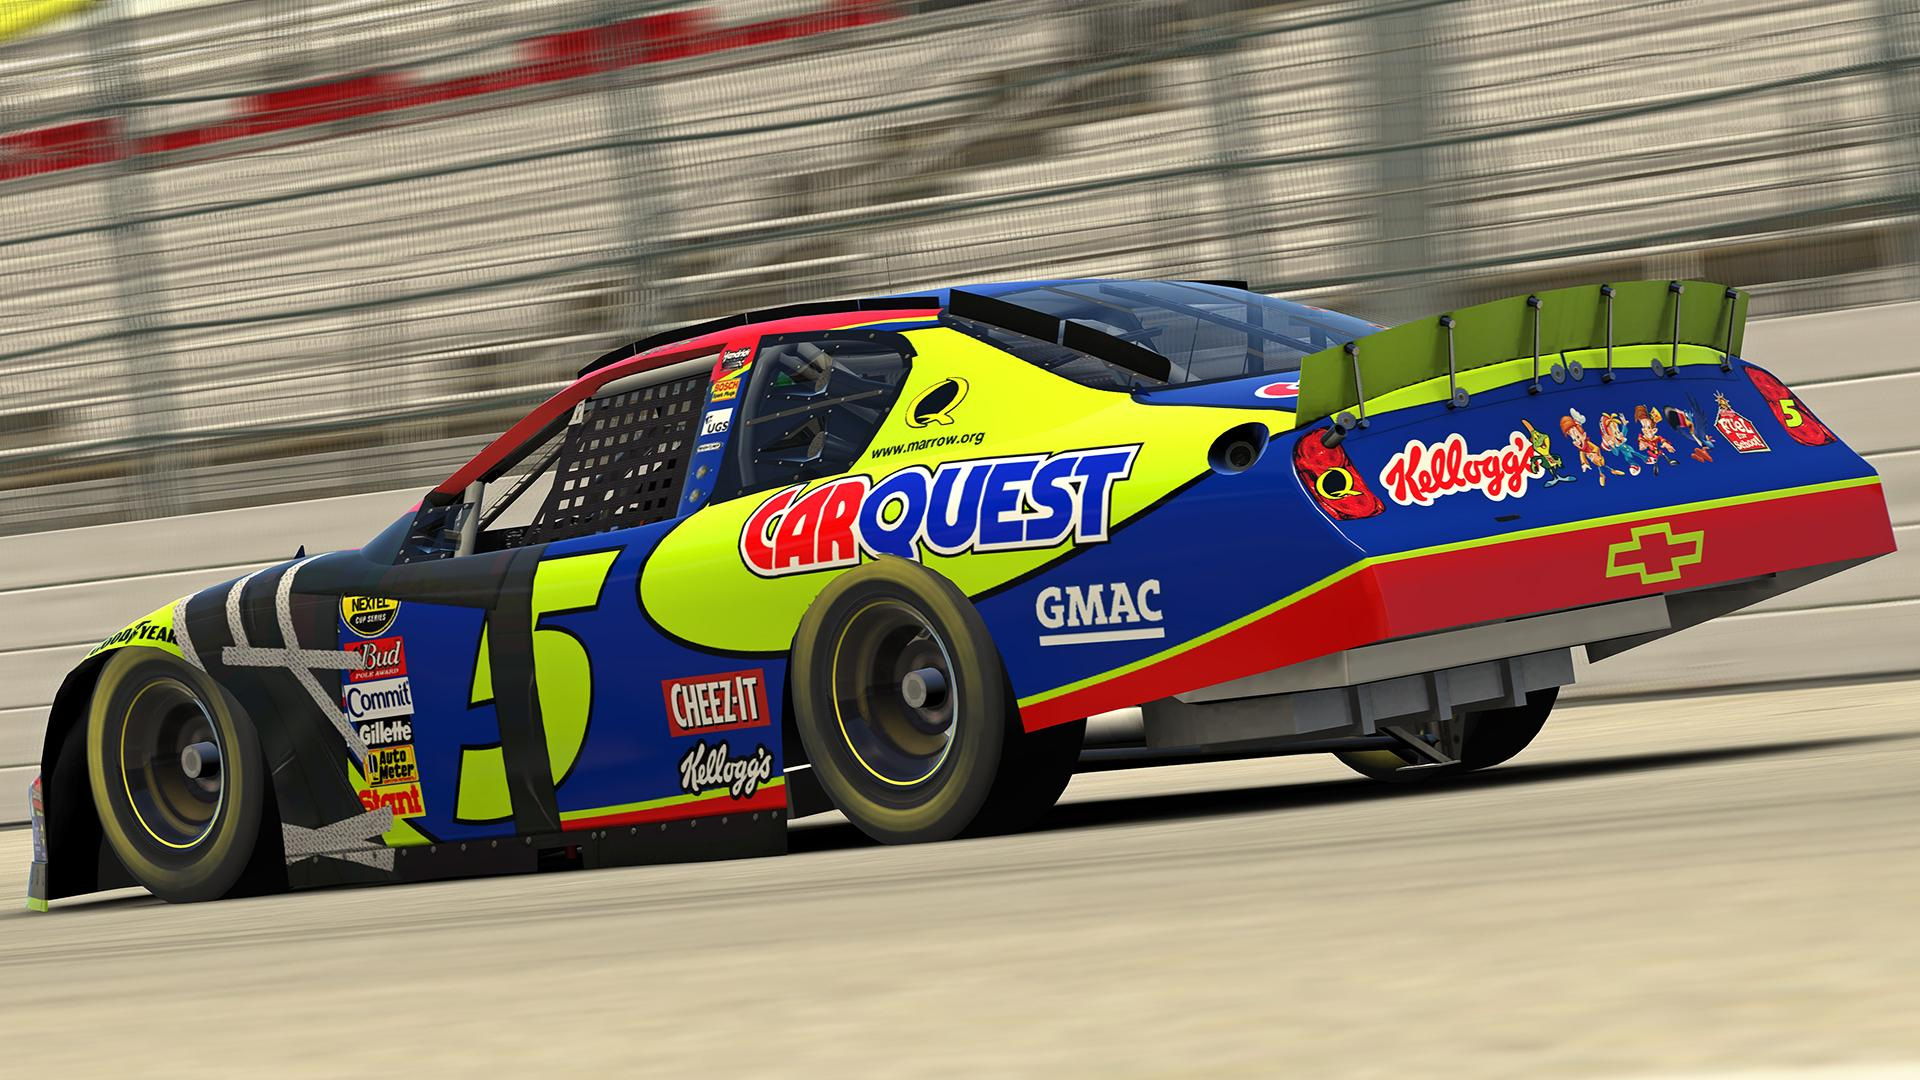 Preview of 2007 Dale Earnhardt Jr. Kelloggs / Carquest #5 Chevrolet Monte Carlo SS by Jordan Erickson